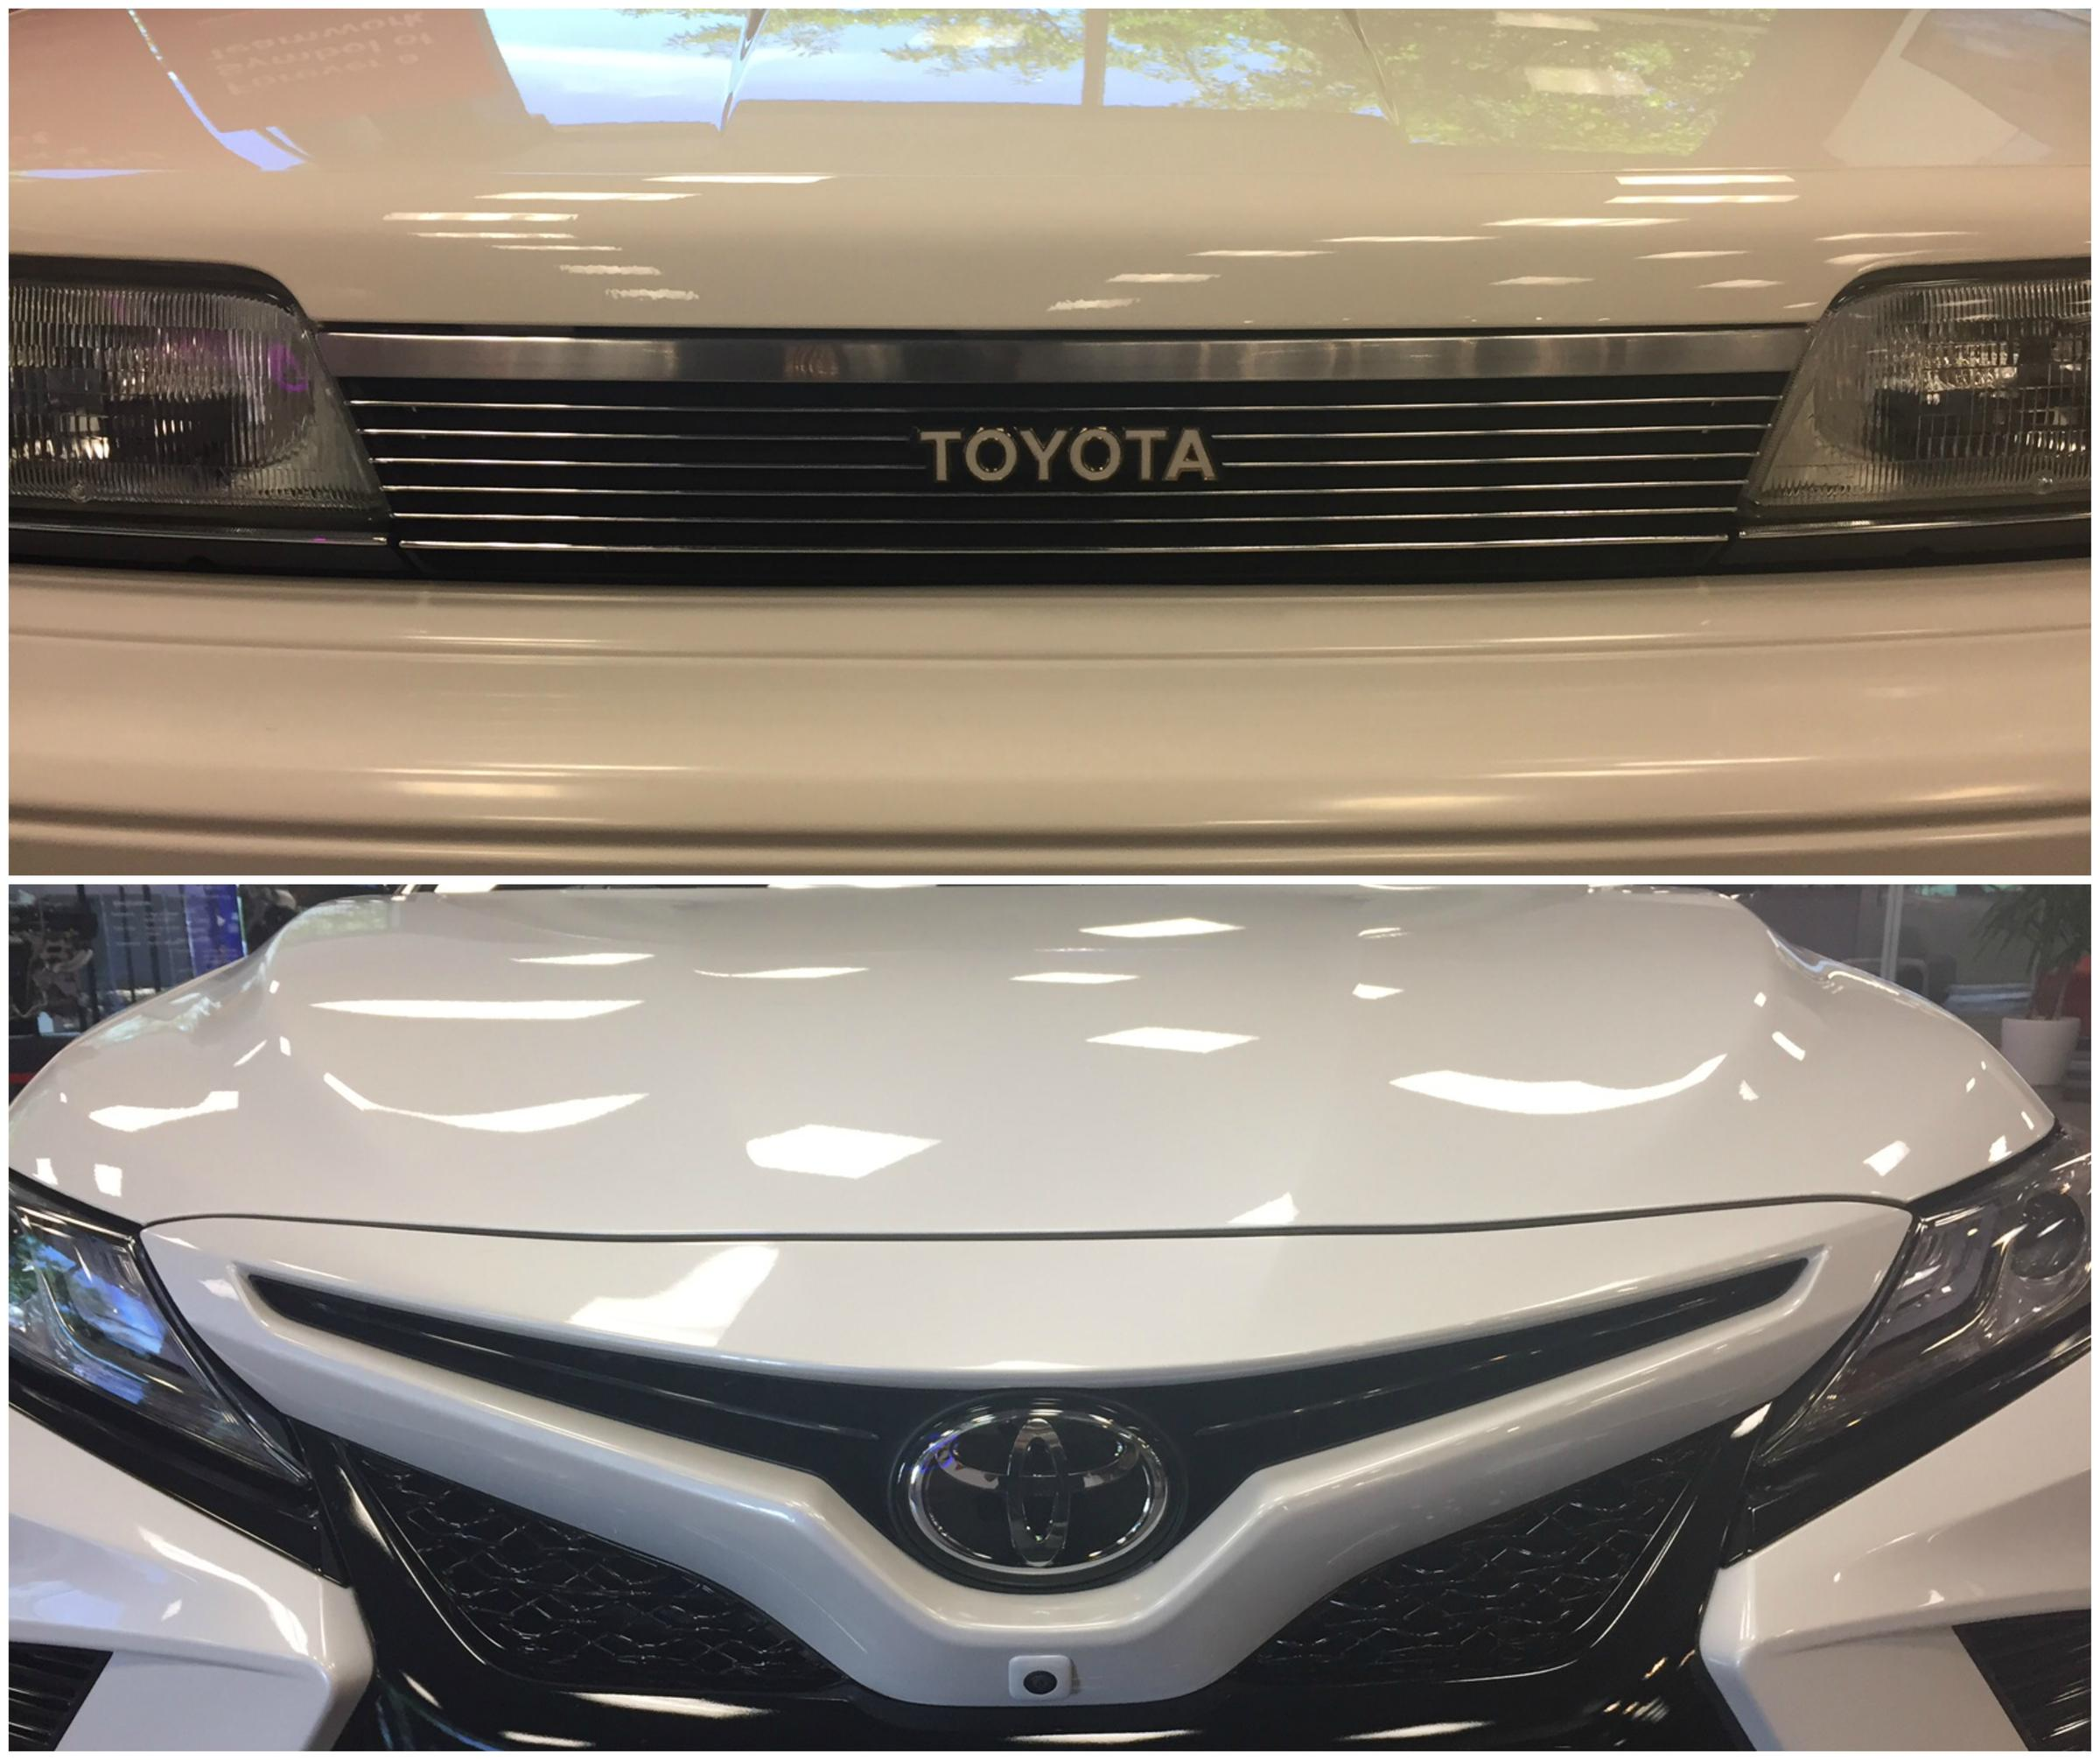 Toyota Camry Rolls Off the Production Line in Kentucky